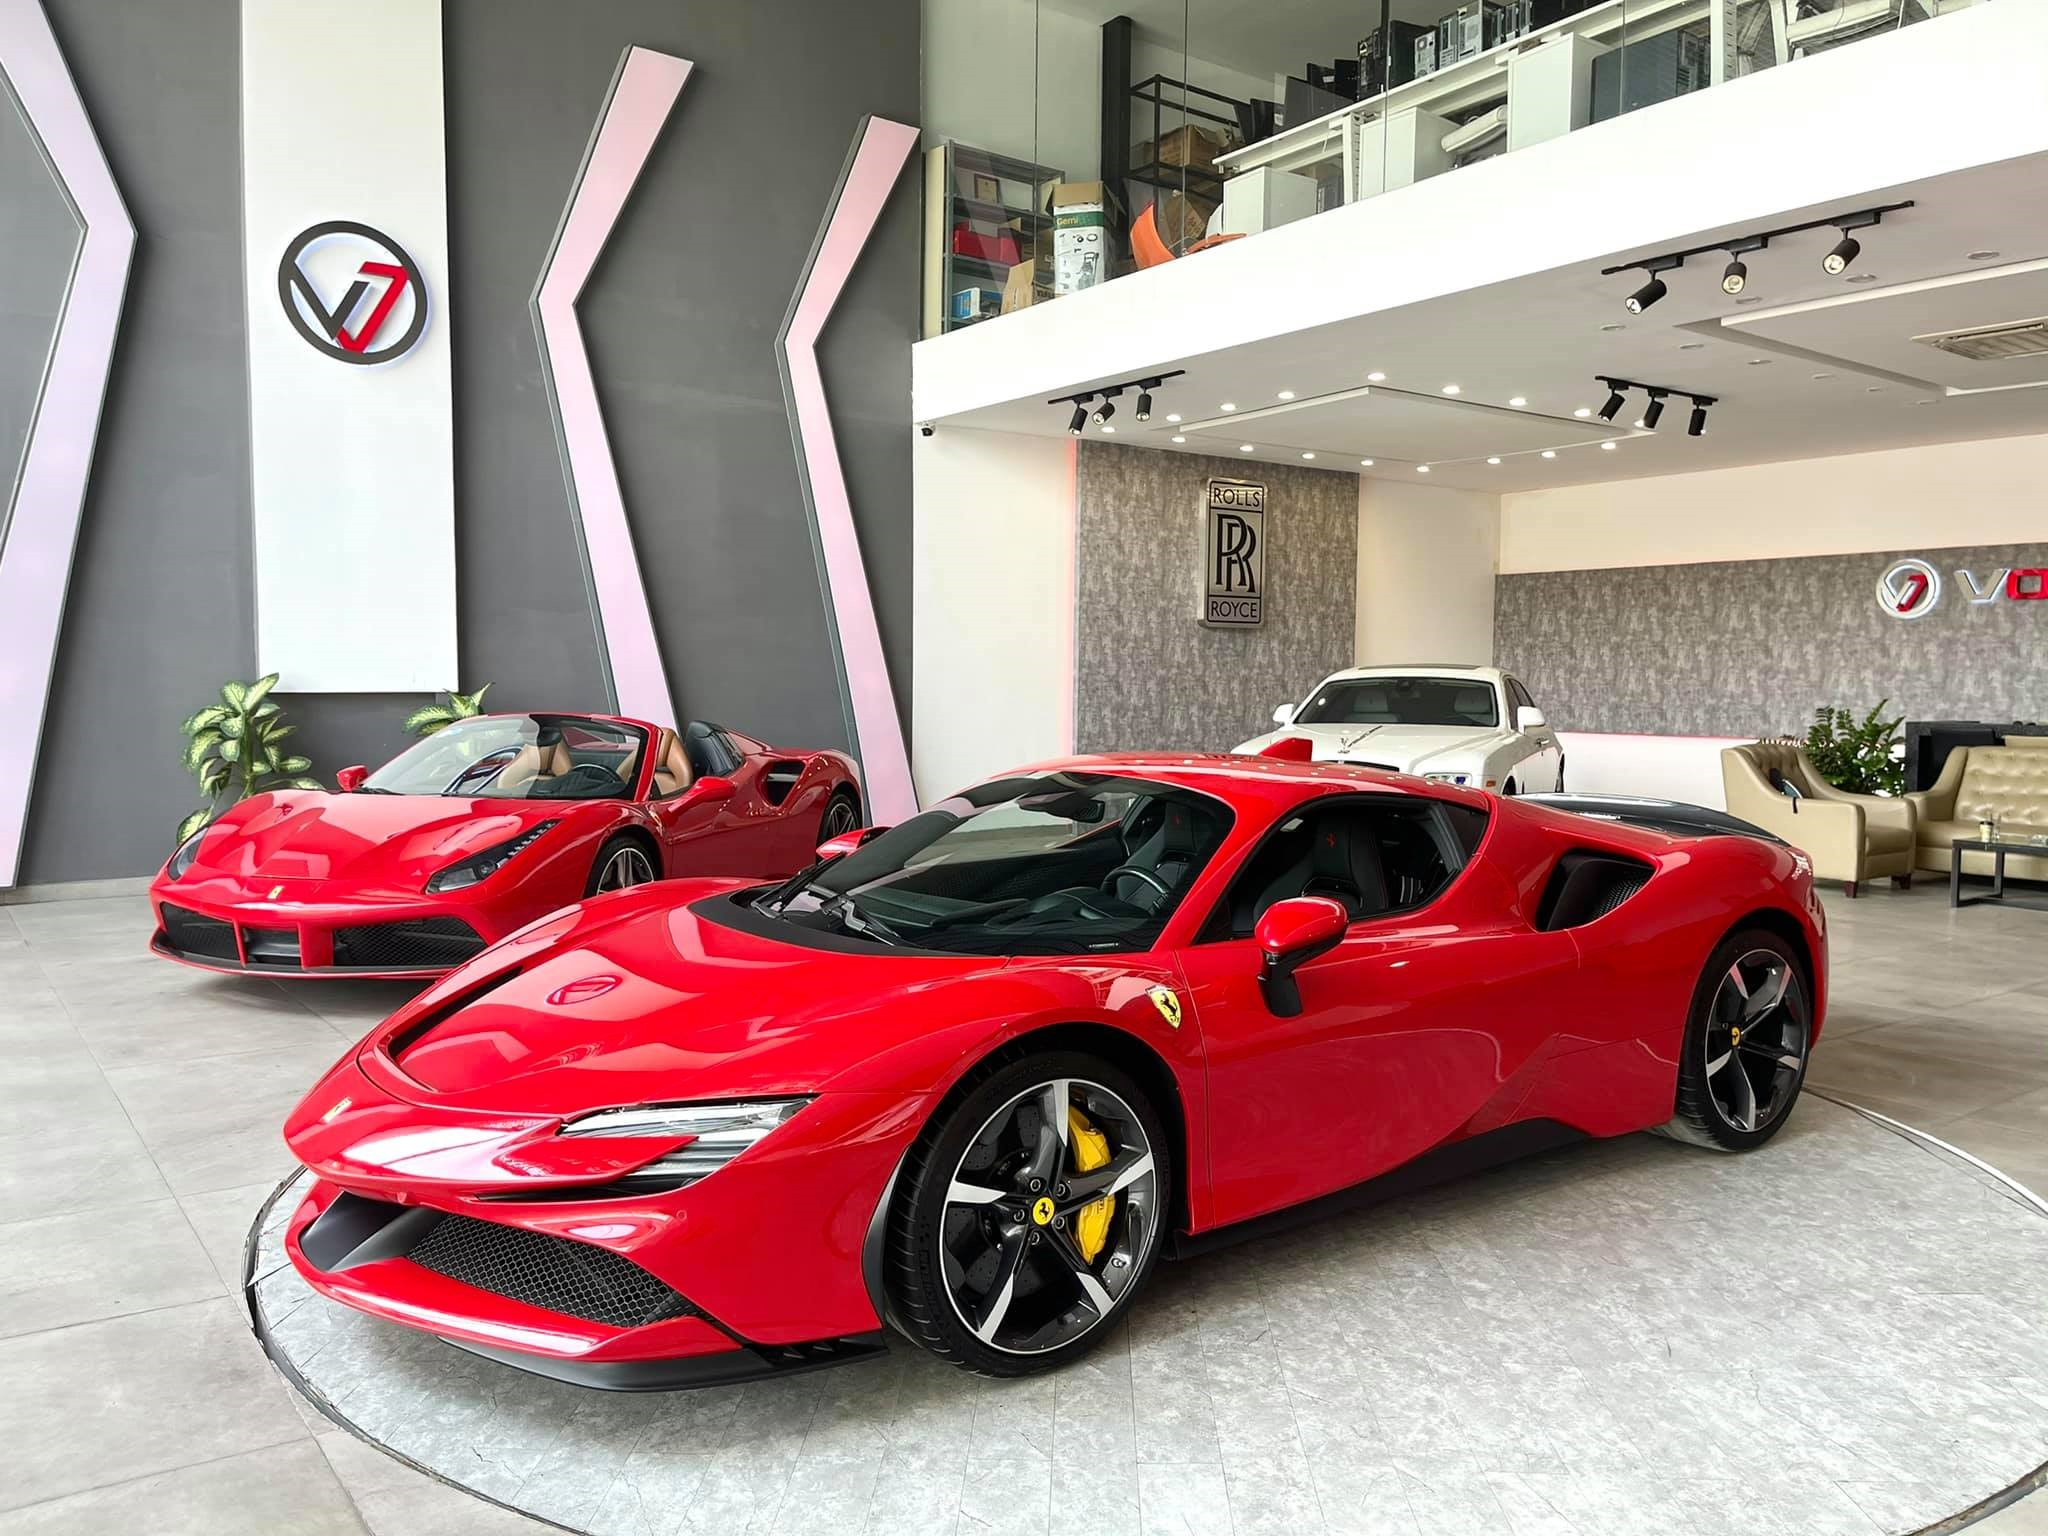 Is the Ferrari SF90 Stradale the world's fastest production car?